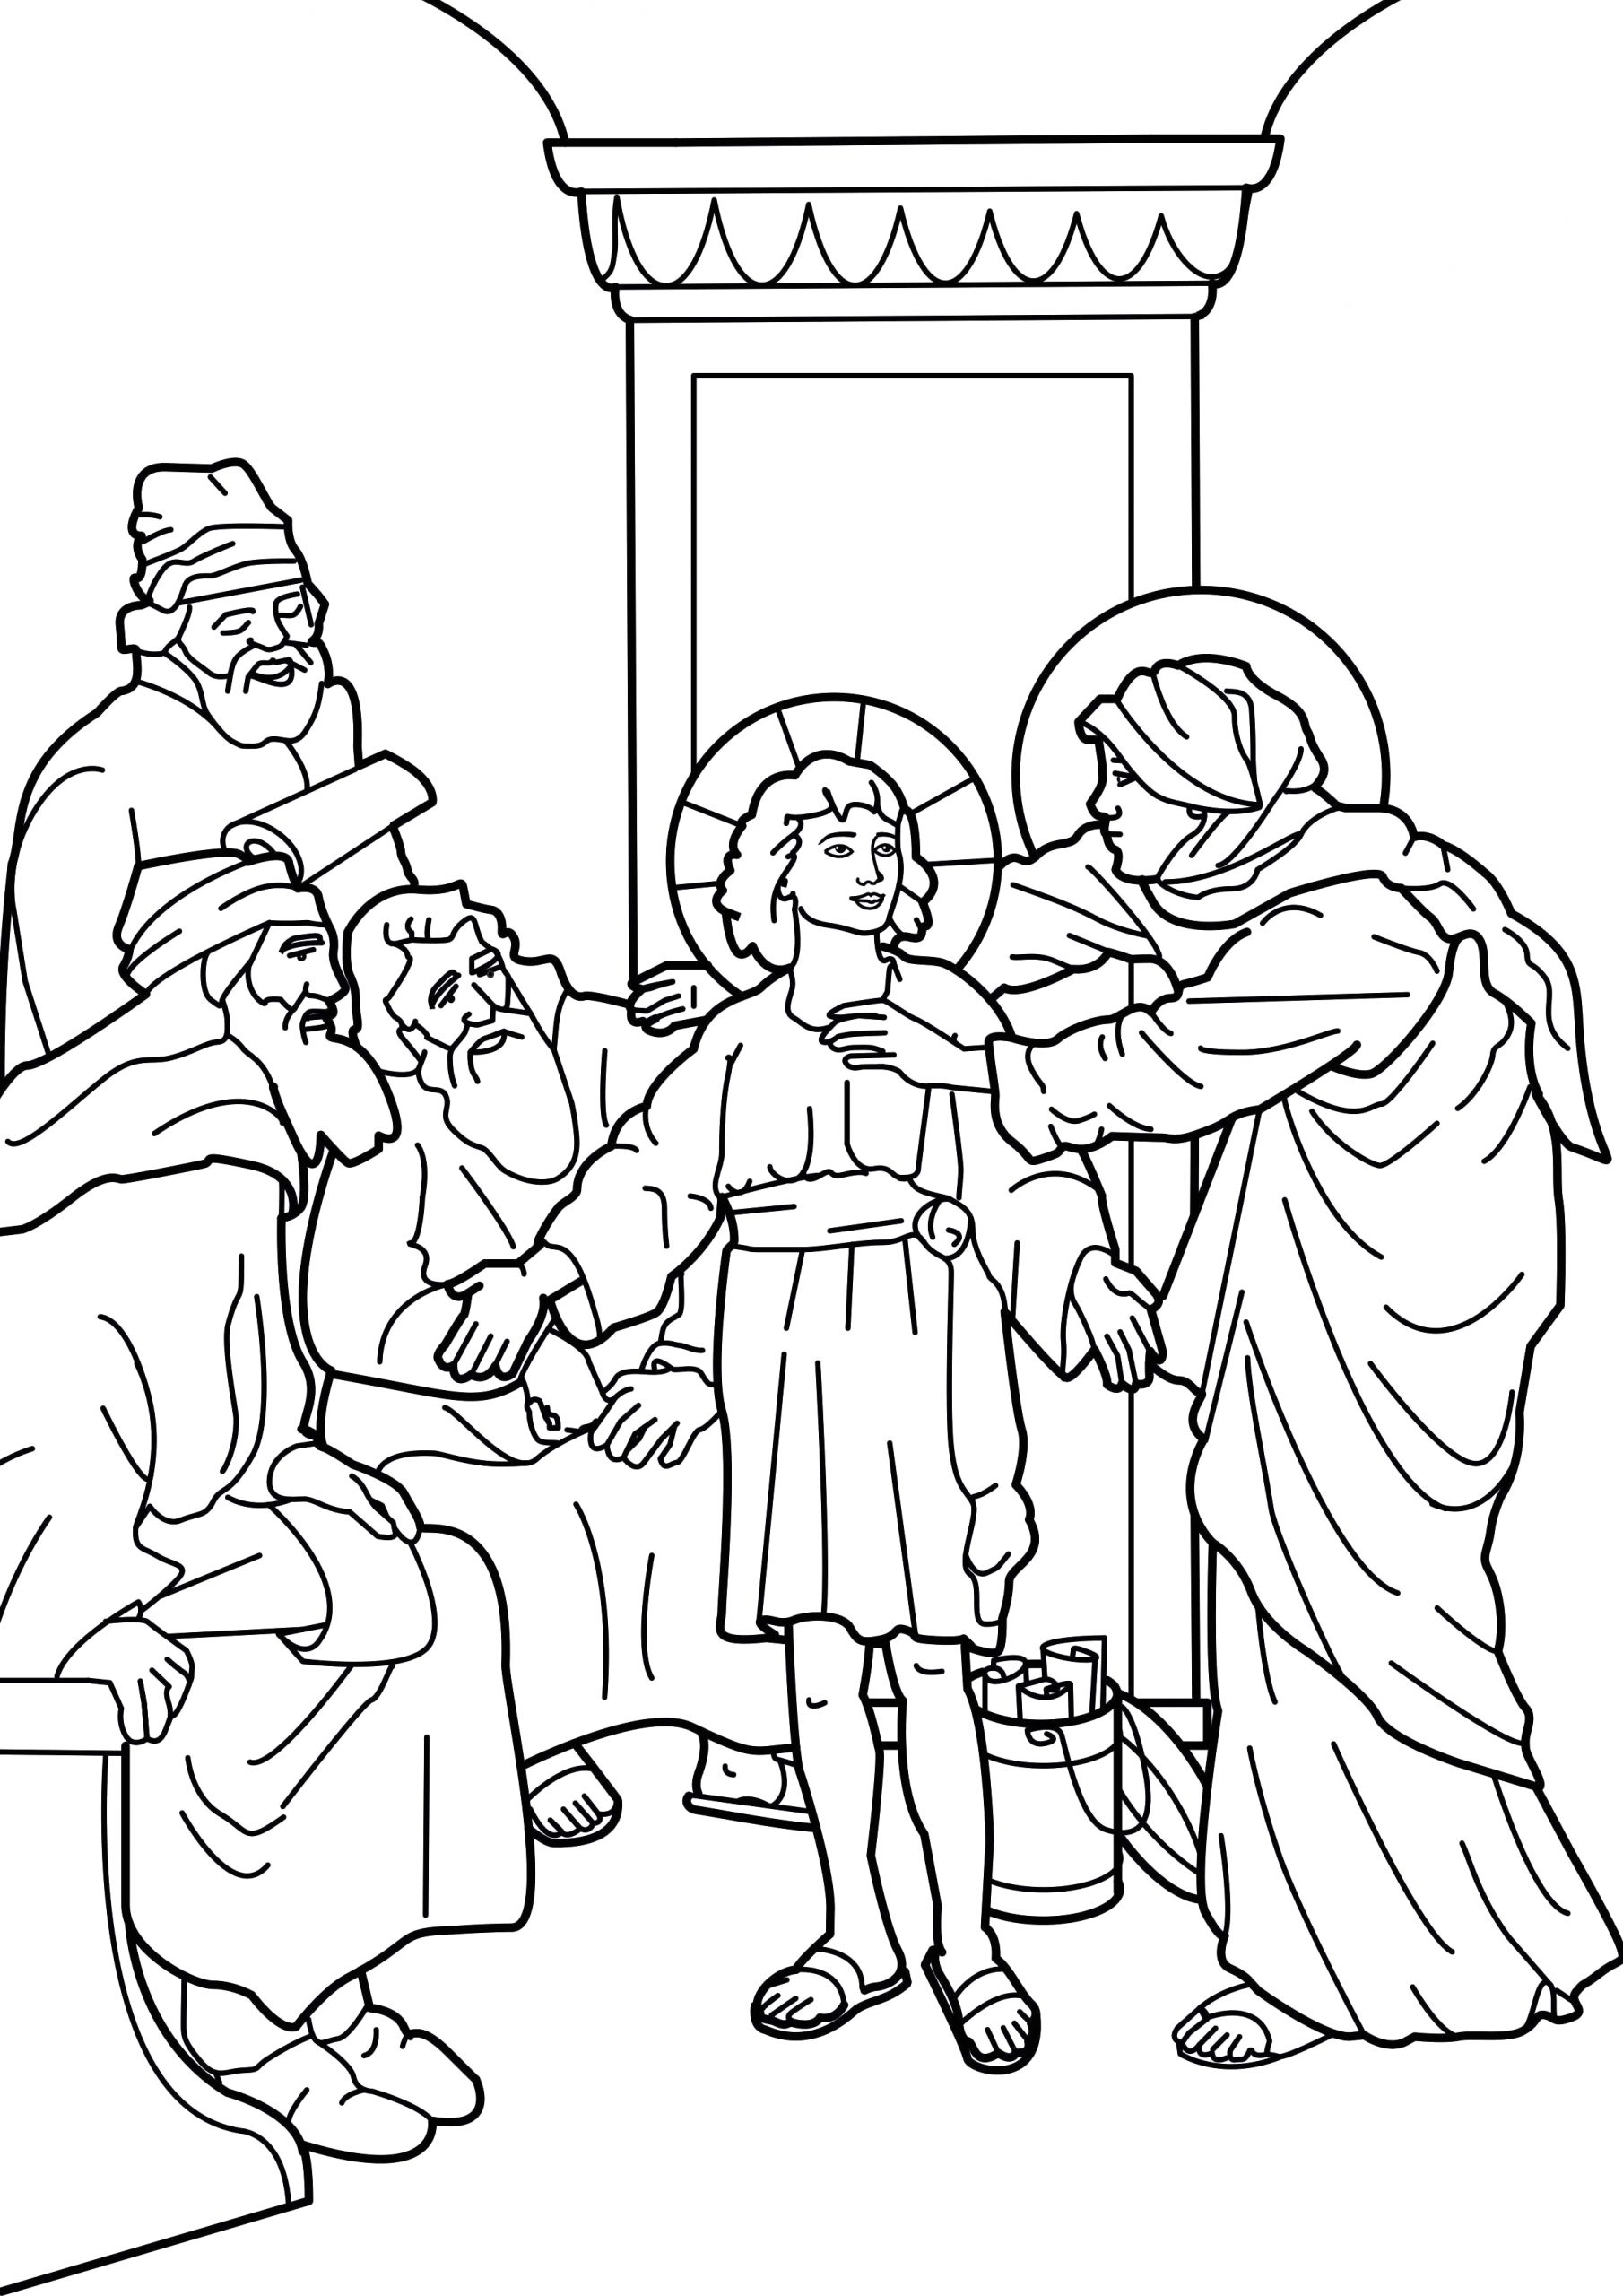 Jesus as A Boy In the Temple Coloring Page Pin by Catholic Word On Catholic Coloring Pages for Kids